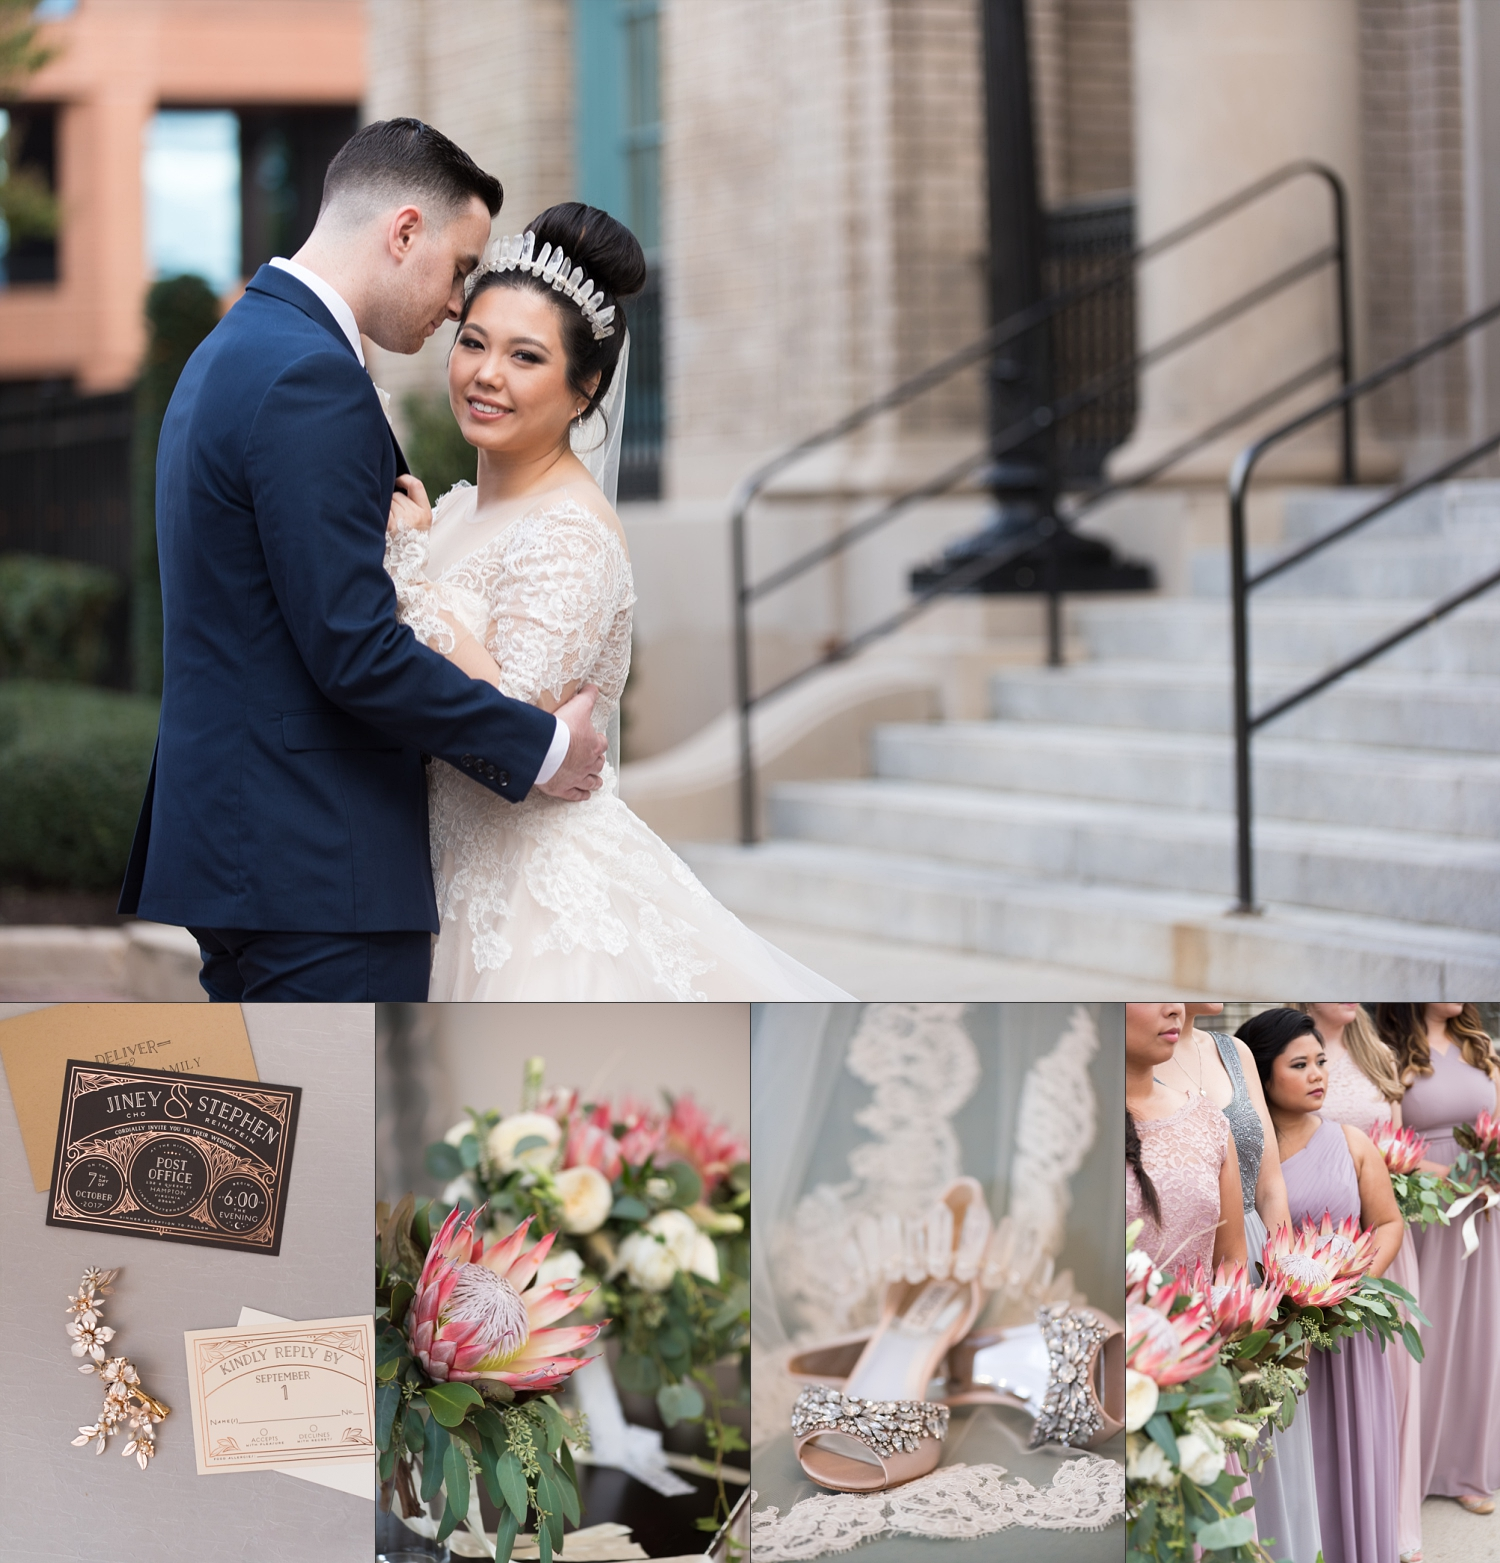 Harry Potter Themed Wedding at Historic Post Office Hampton Virginia.jpg